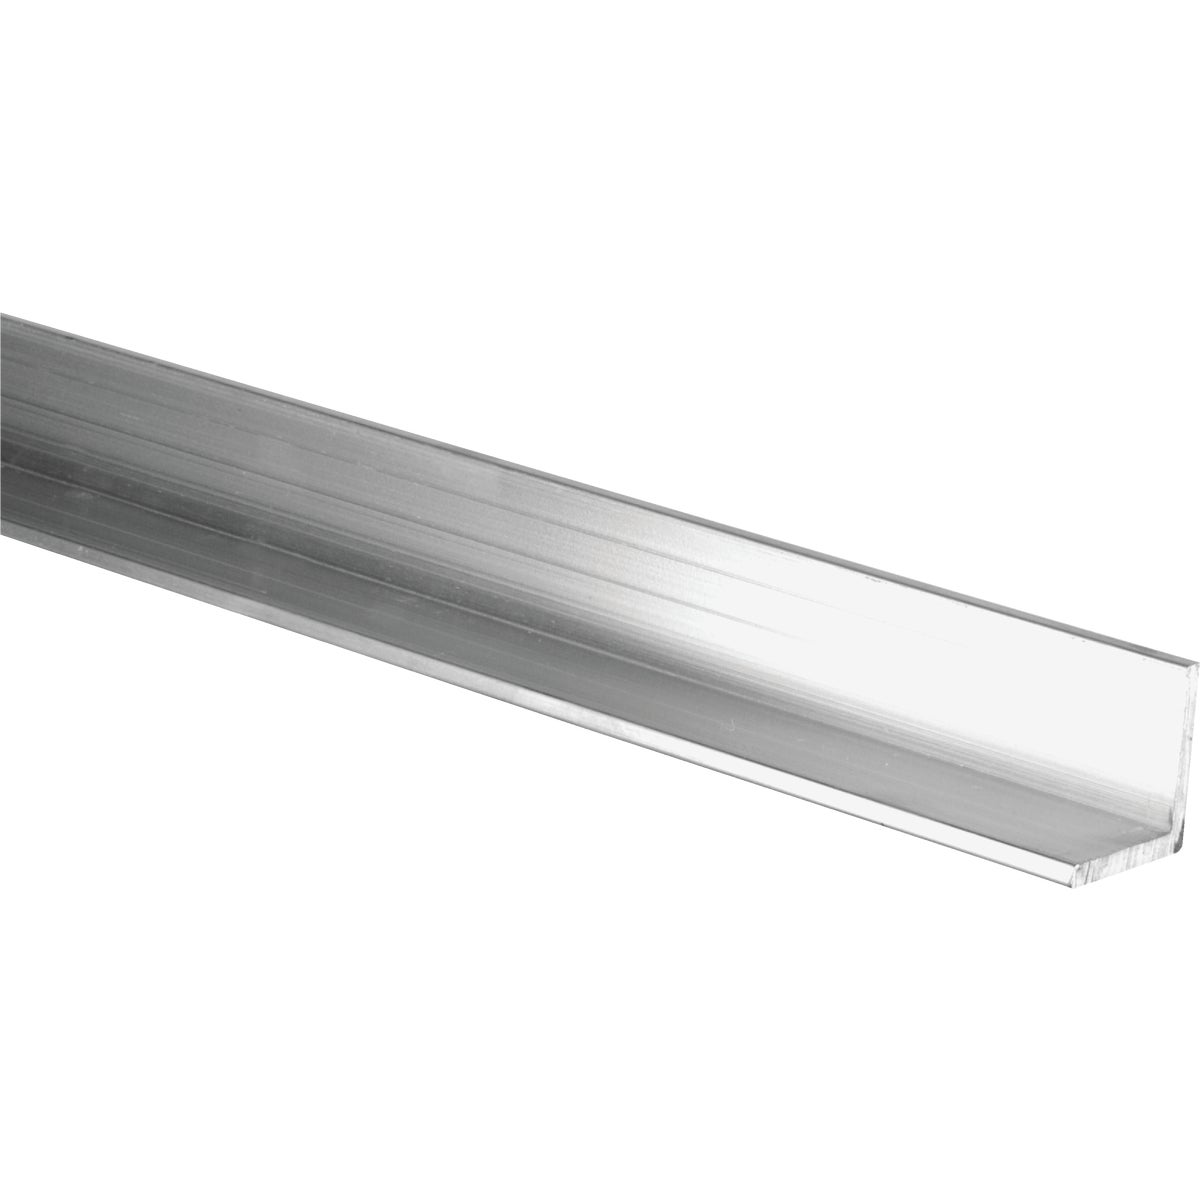 National Mfg. 1/8X3/4X8' ALUM ANGLE N258343